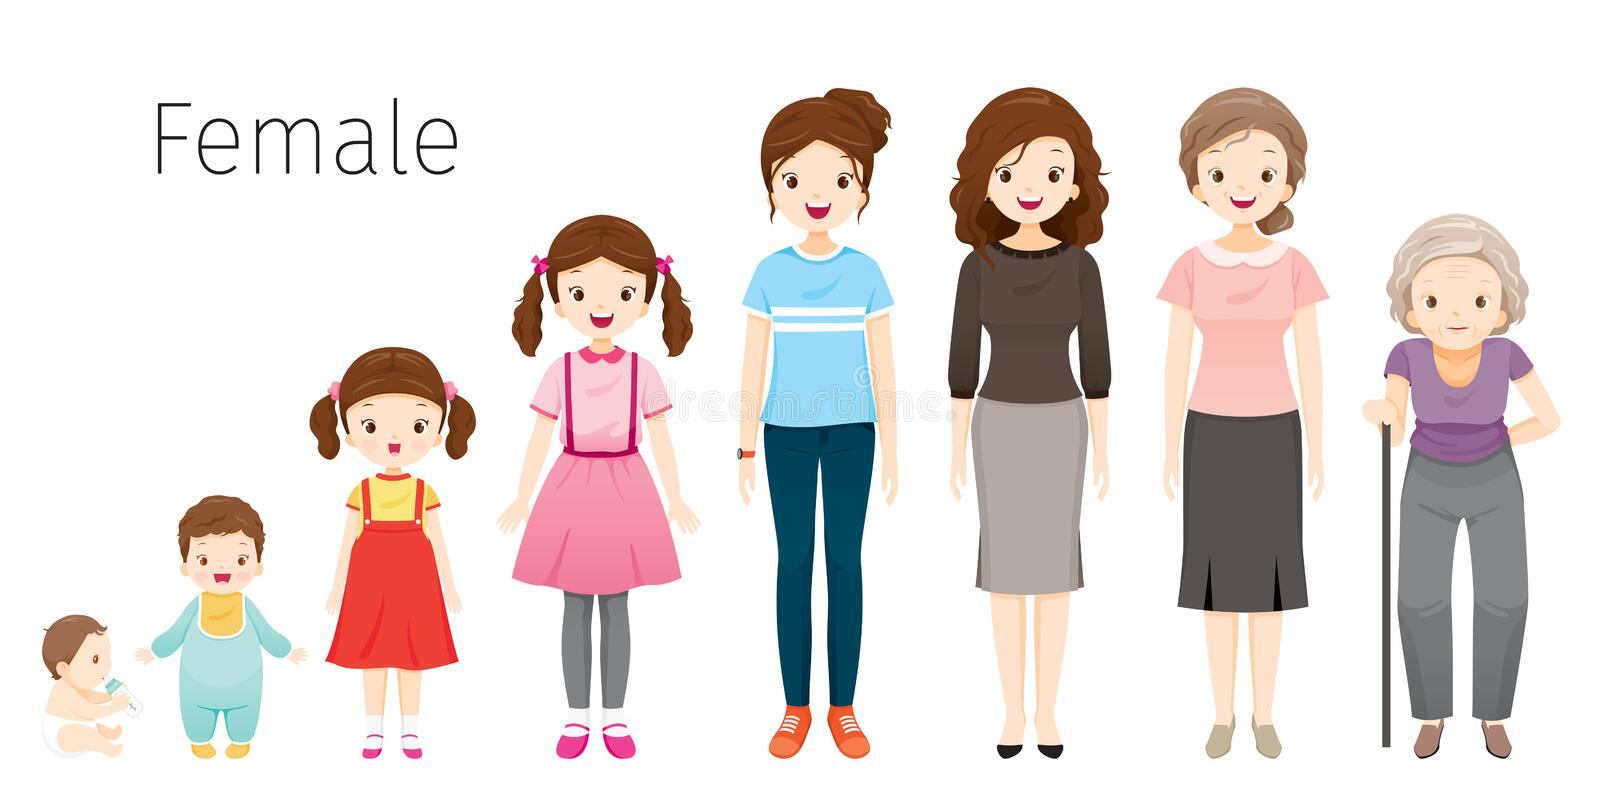 The Life Cycle Of Woman. Generations And Stages Of Human Body Growth. Different Ages, Baby, Child, teenager, adult, Old Person stock illustration